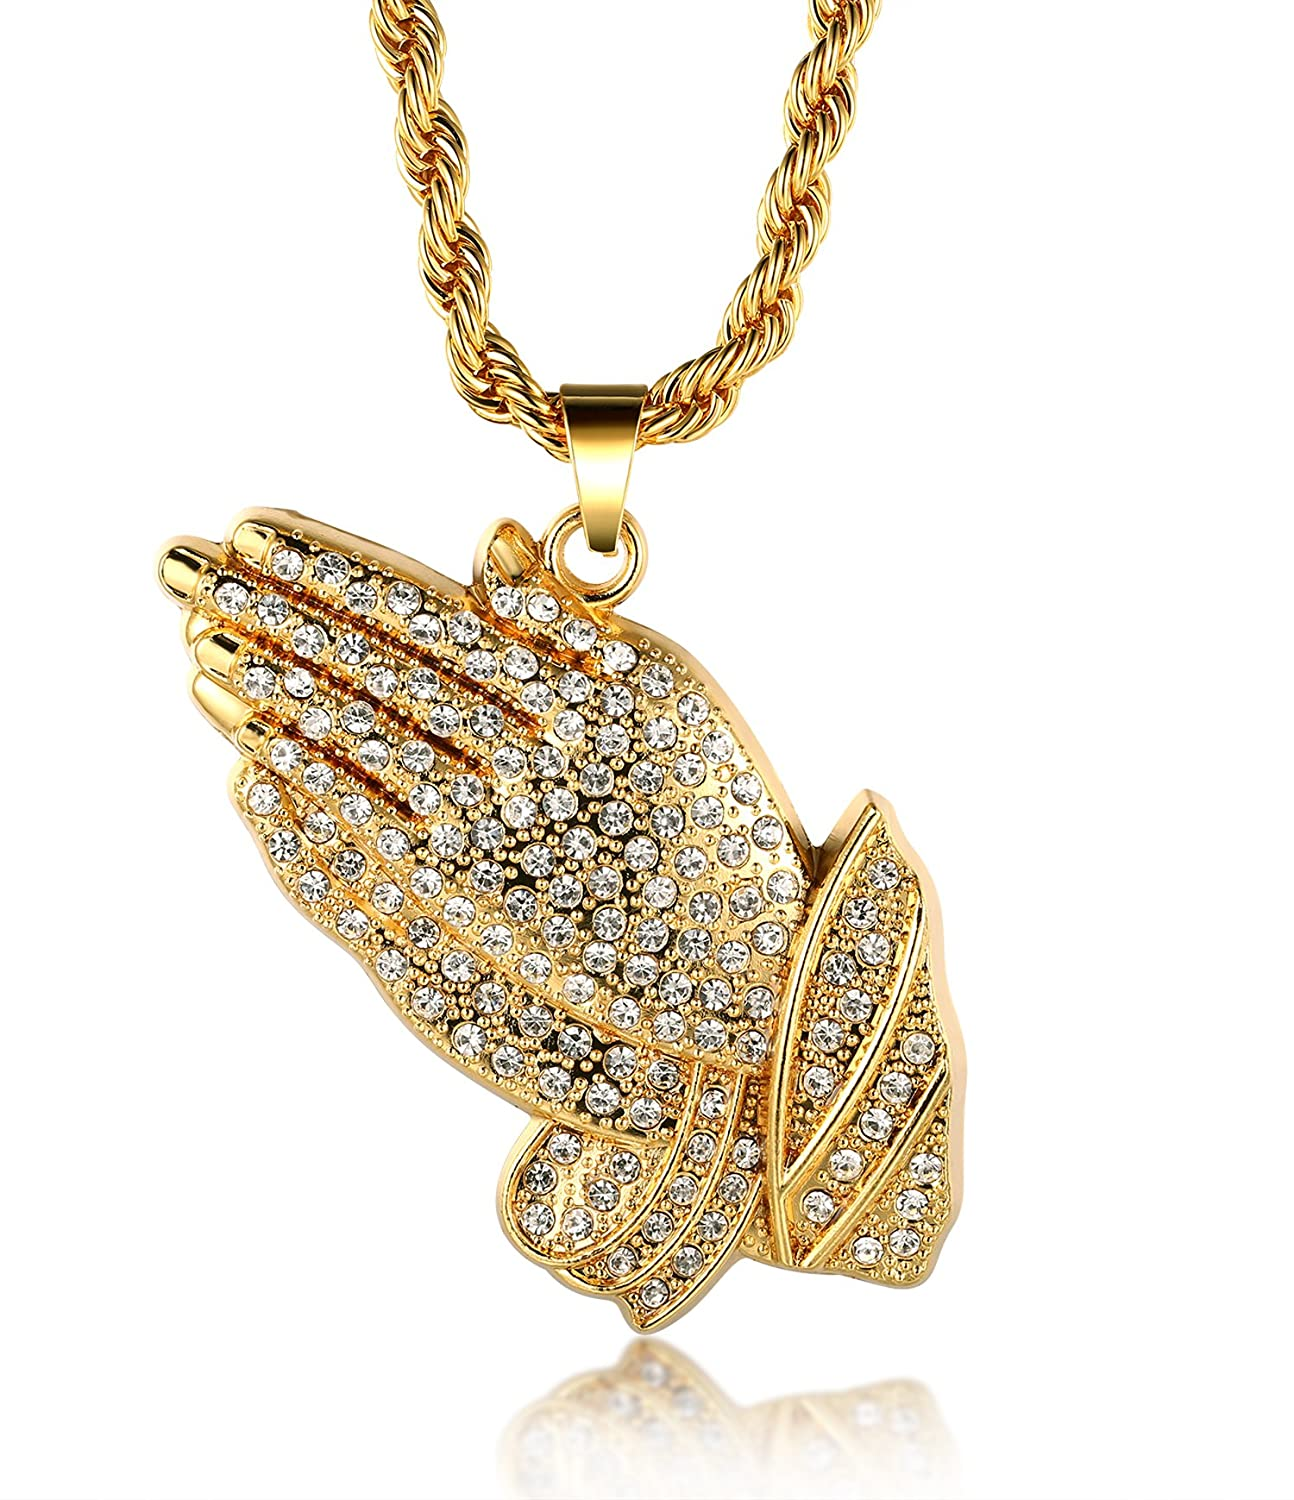 na com necklace en tranloev hamsa gold hand layered kd